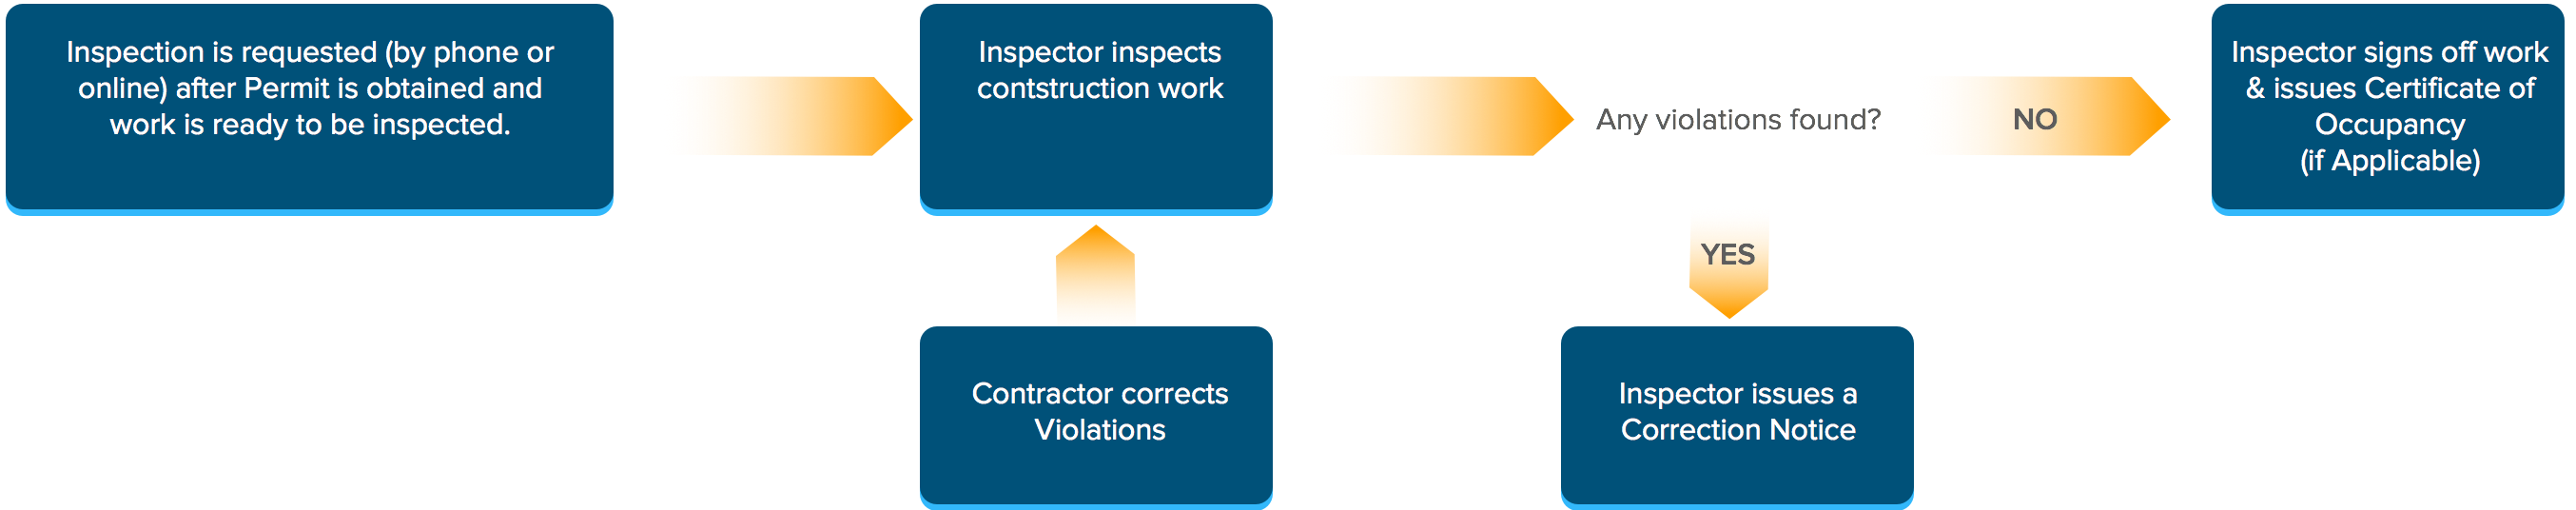 Inspection ladbs flowchart for the inspection process xflitez Choice Image